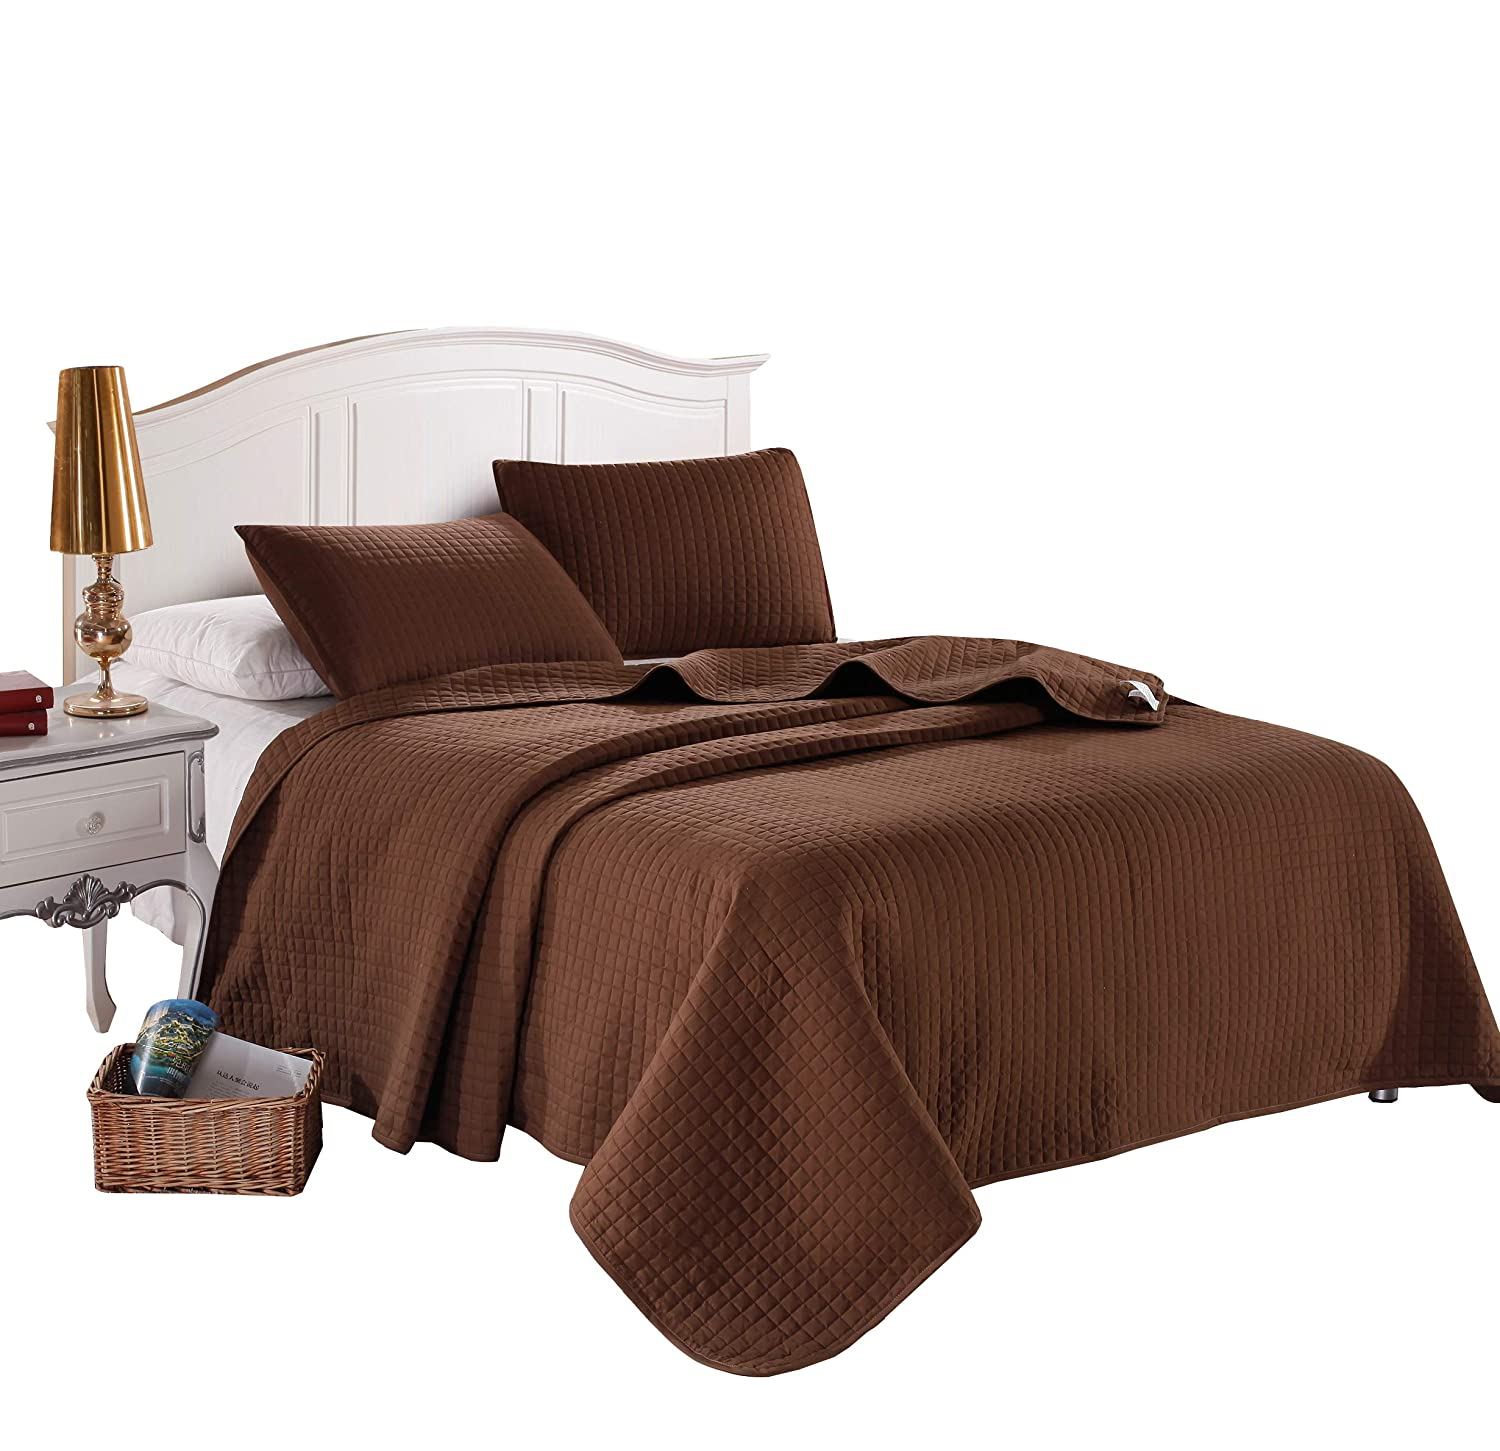 Twin Brown Solid Color Box Stitch Quilted Bedspread Coverlet 68 by 86 inches plus 2 Standard Shams 20 by 26 inch Hypoallergenic Reversible Bed Cover for Homes,Hotels,Motels, Rentals 4 lbs